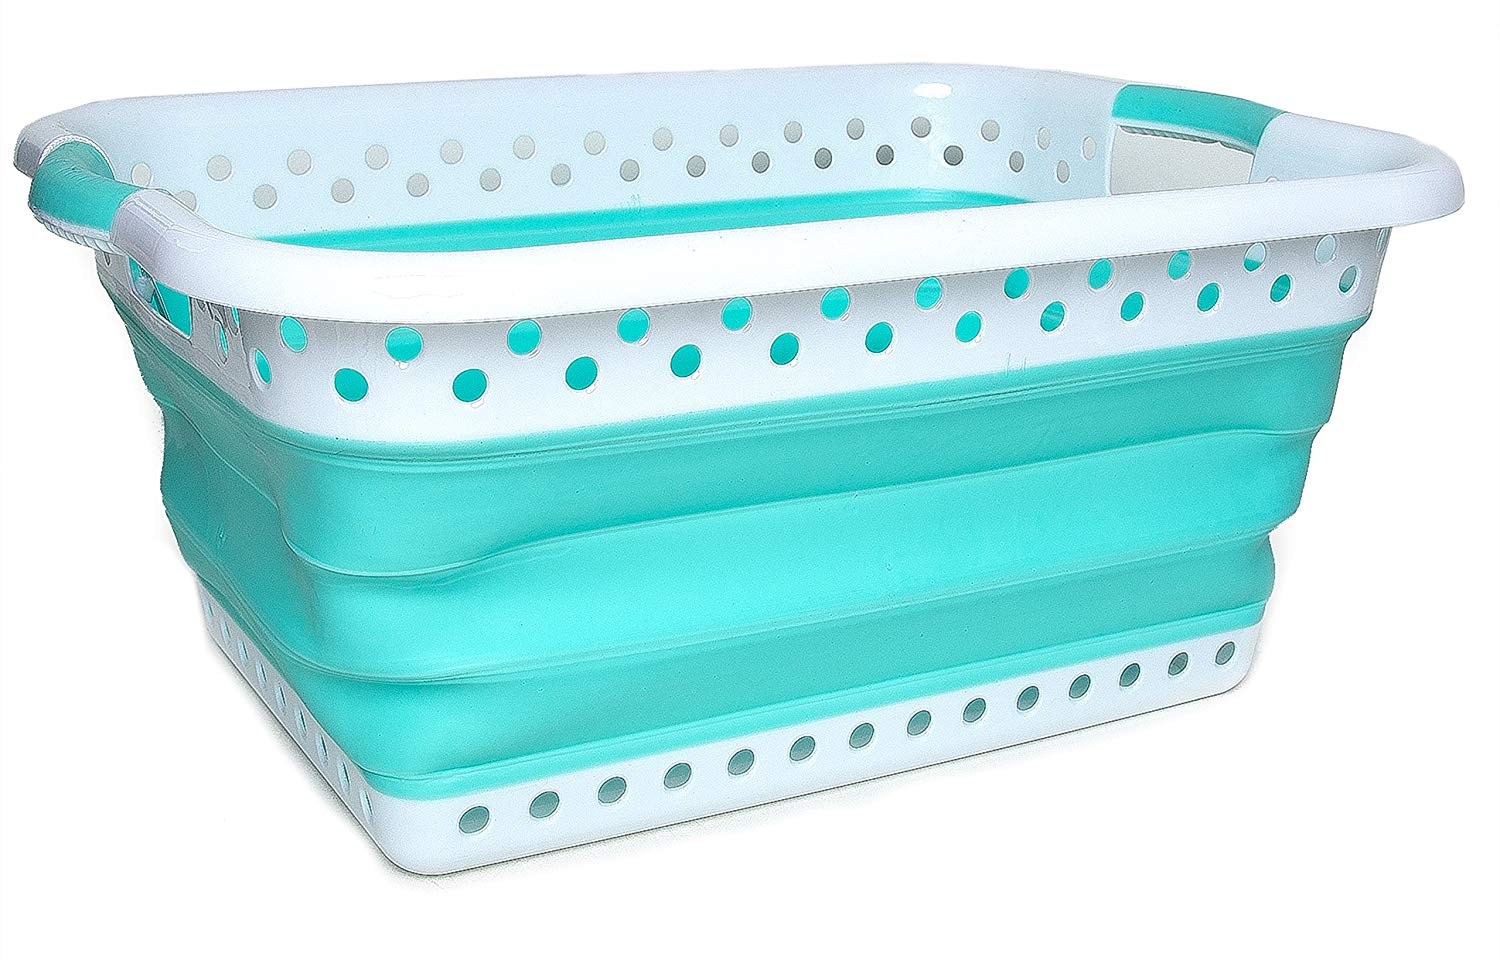 Collapsible Laundry Basket